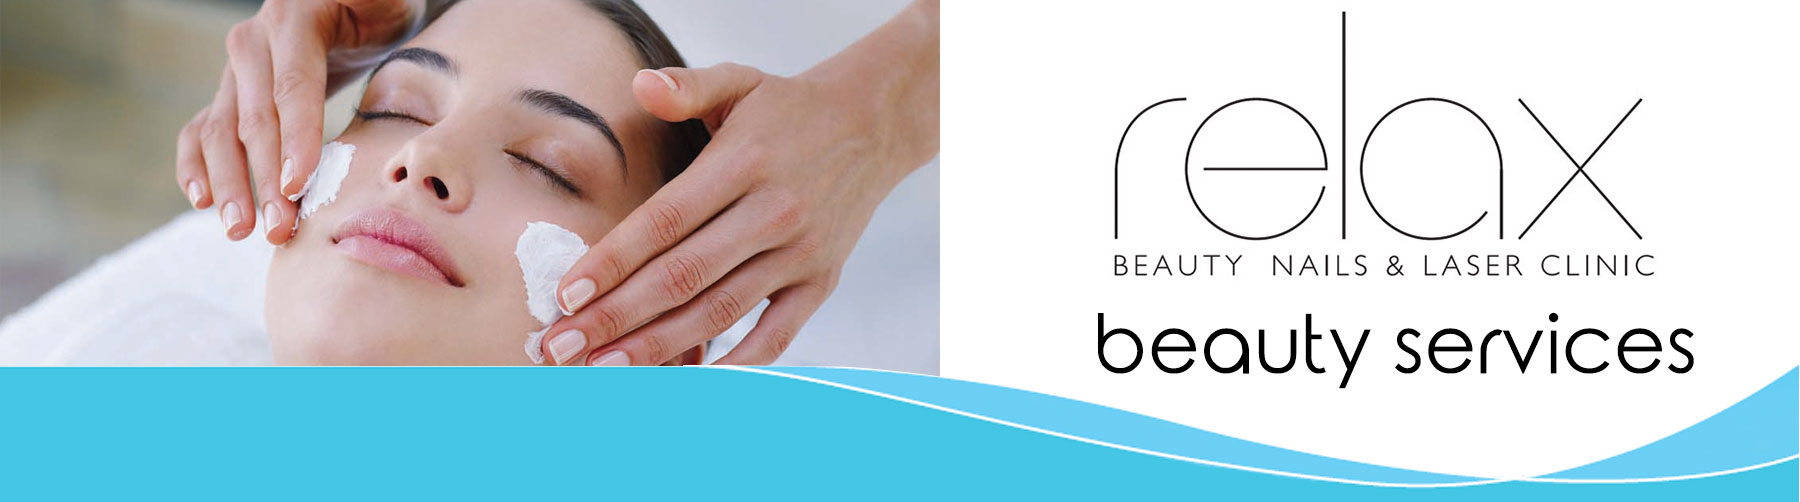 Relax Beauty Clinic - Beauty Services